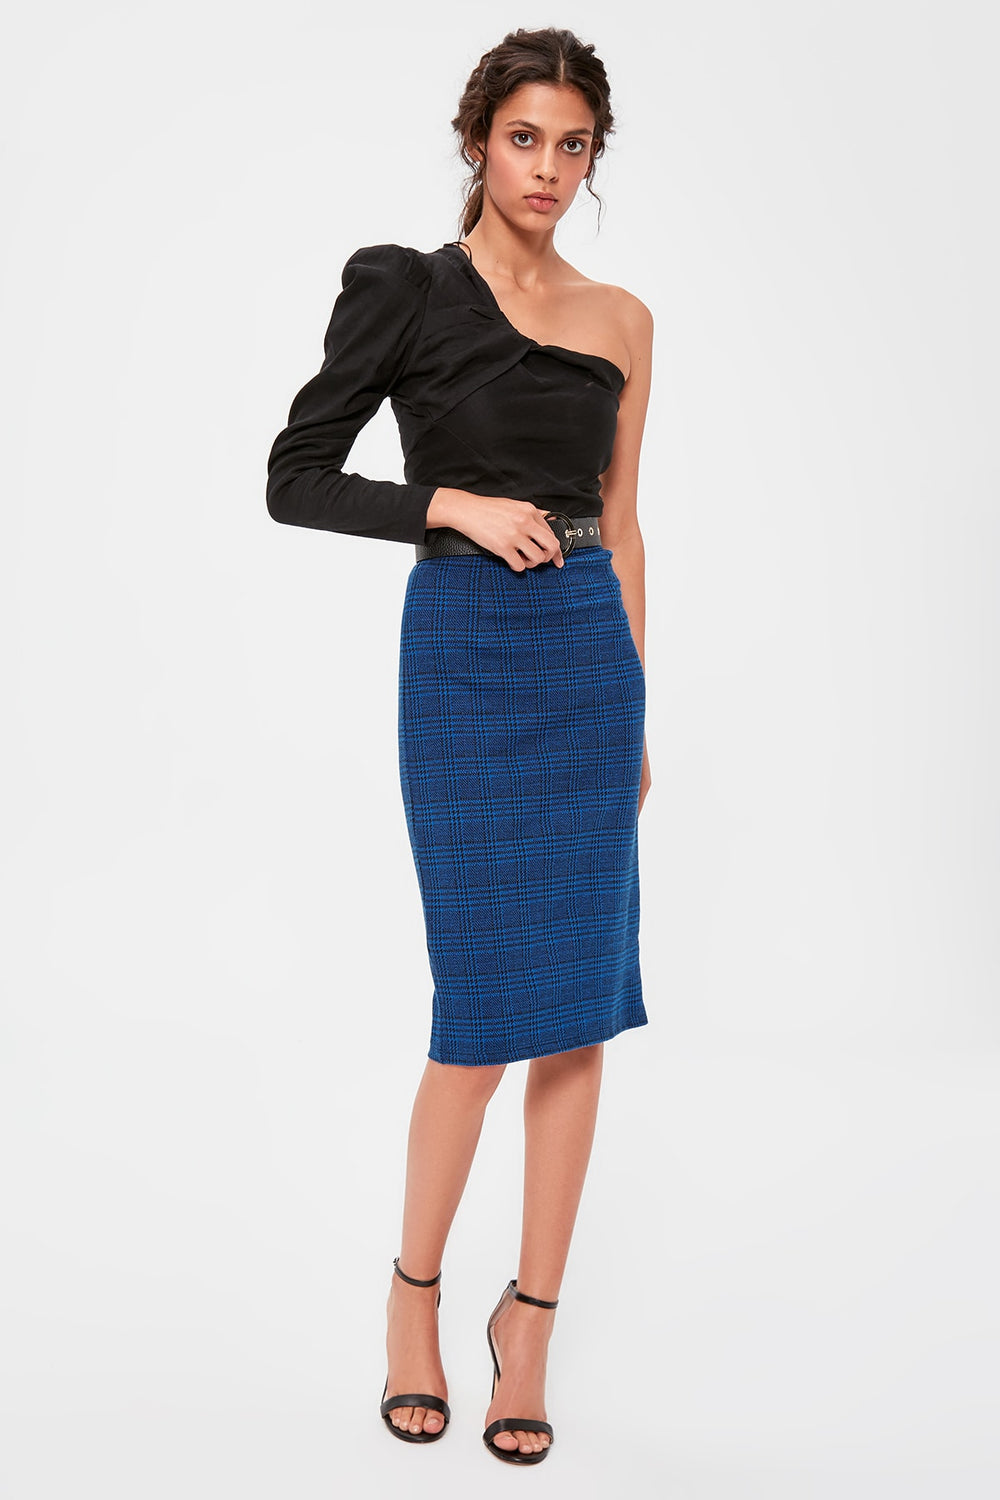 Navy Plaid Knitted Skirt - Top Maxy